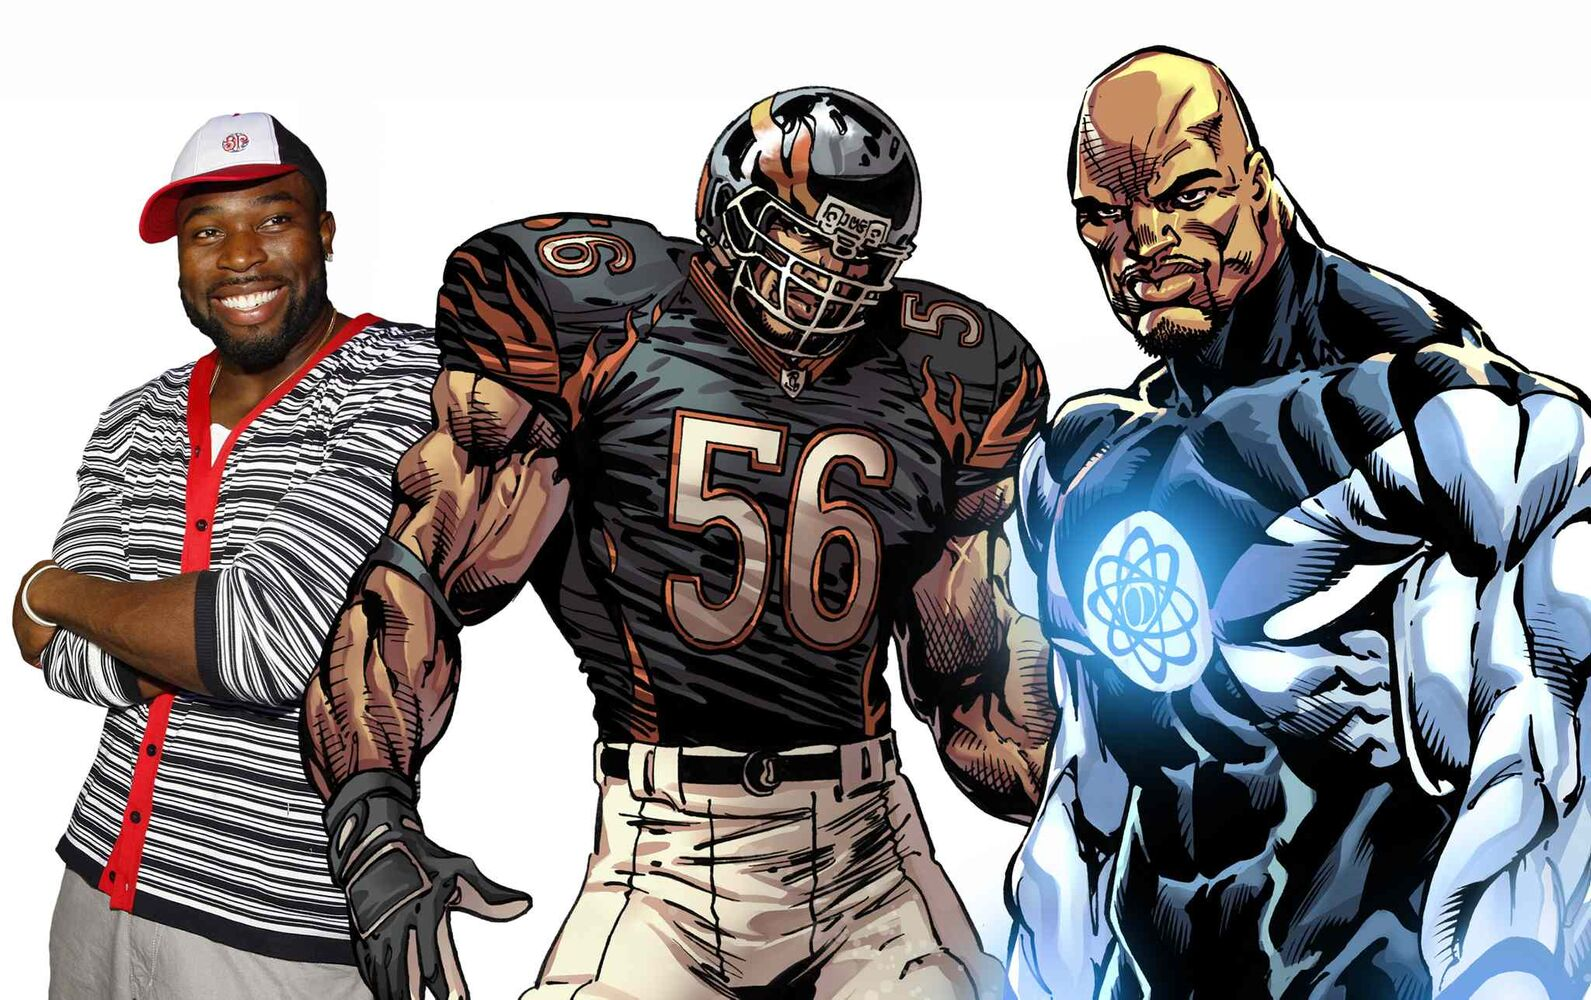 Israel Idonije, left, said one of The Protectors characters — a bearded, bald defensive end from Africa — is not based on him.